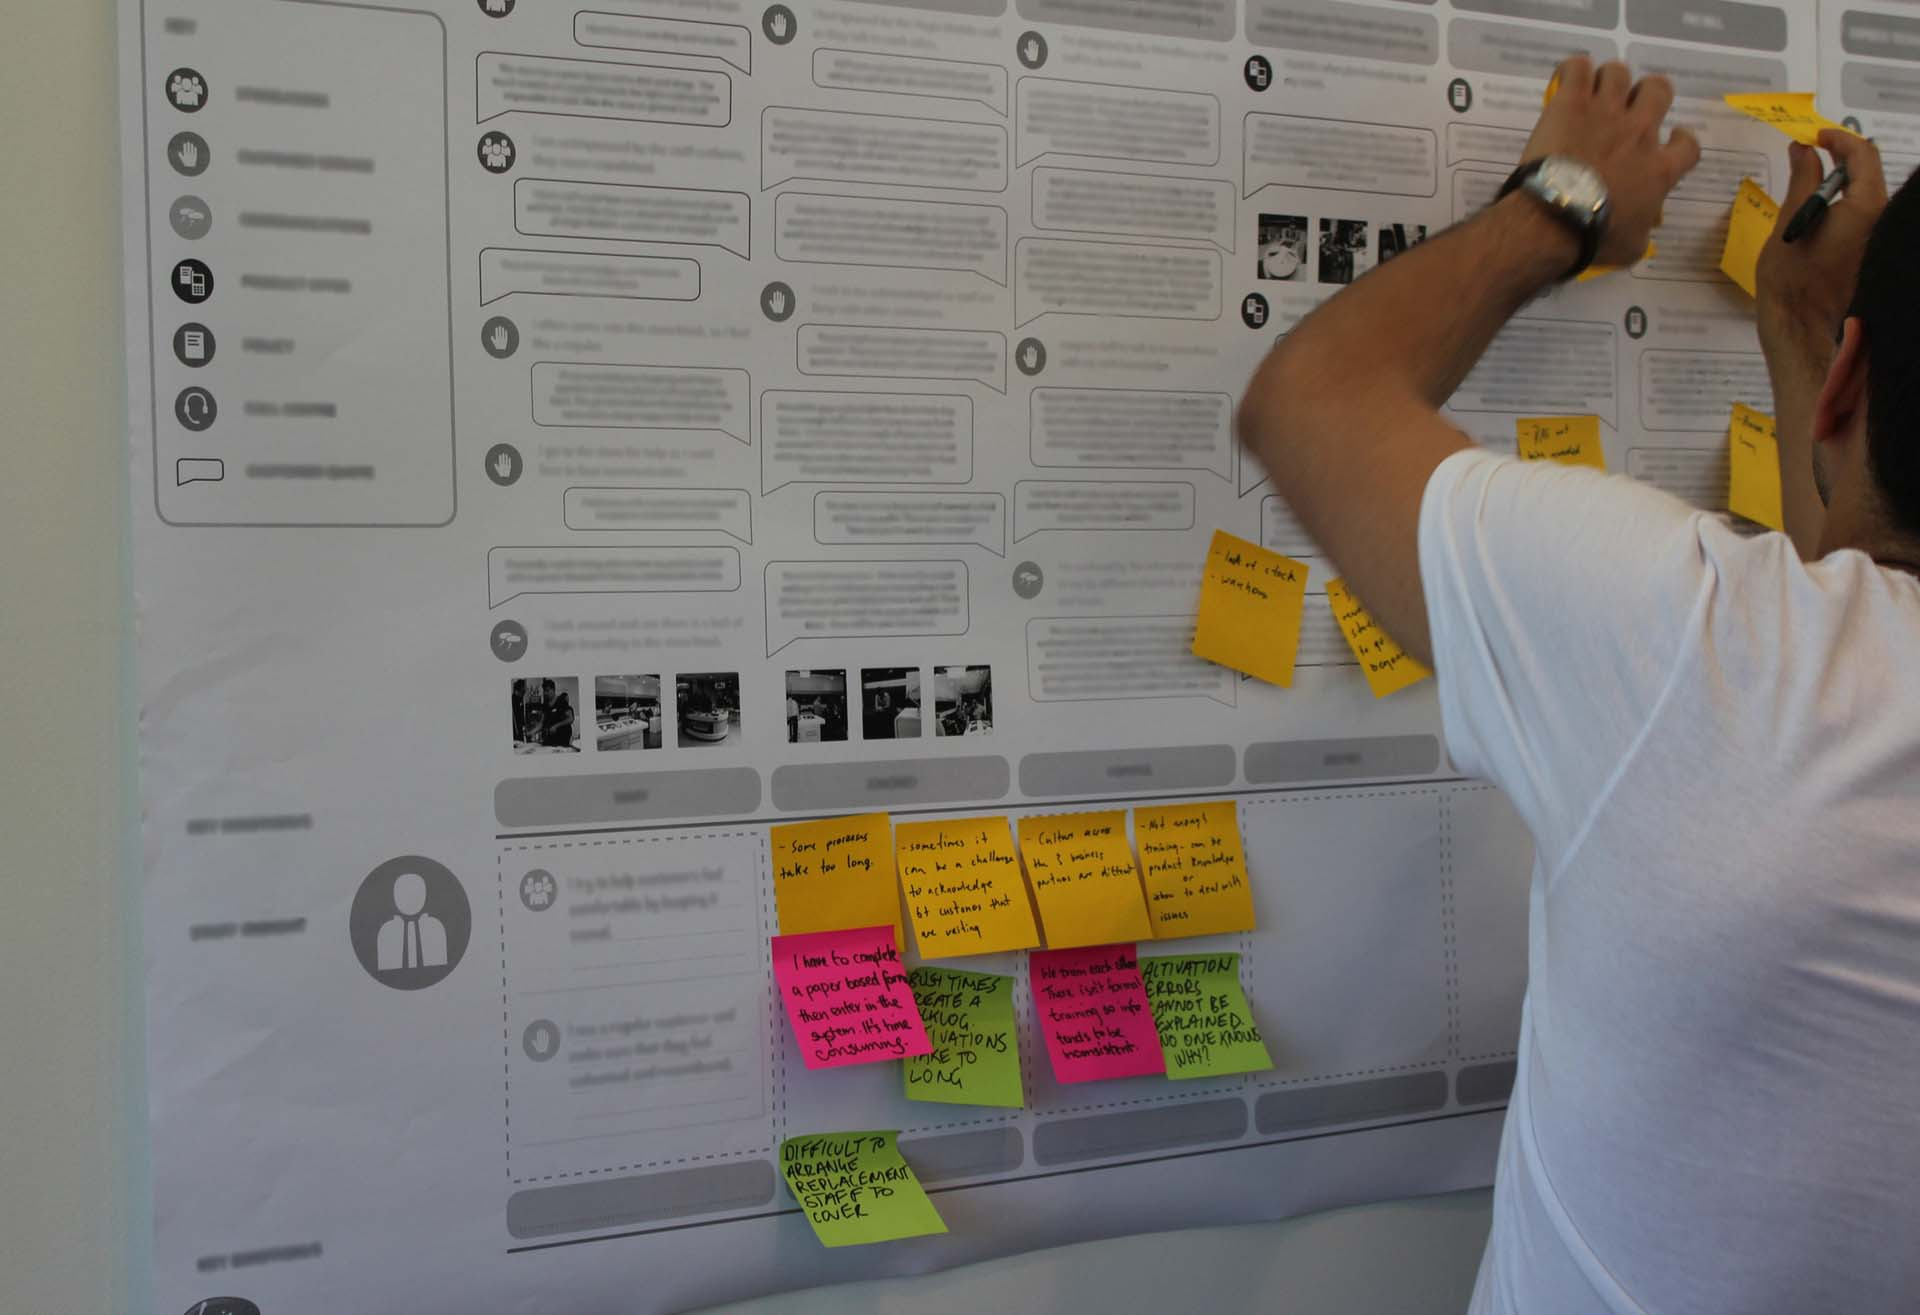 Proto putting notes on a Customer Journey Map